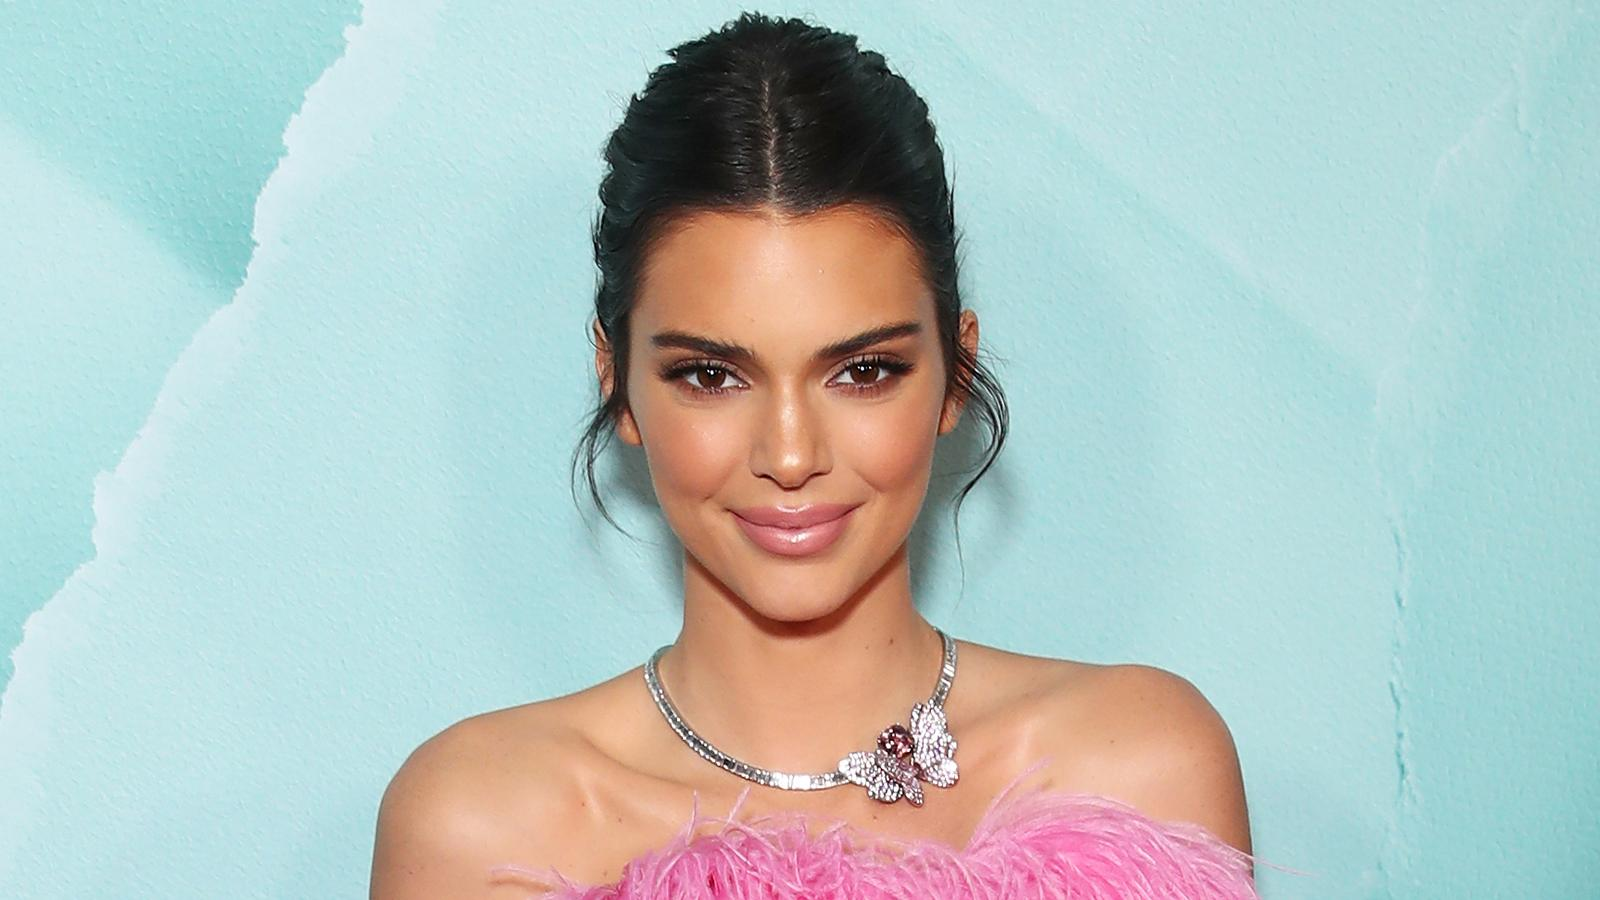 KUWK: Kendall Jenner Hints She Might Want To 'Start A Family' While Playing With Kimye's Sons - Check Out The Cute Pics!